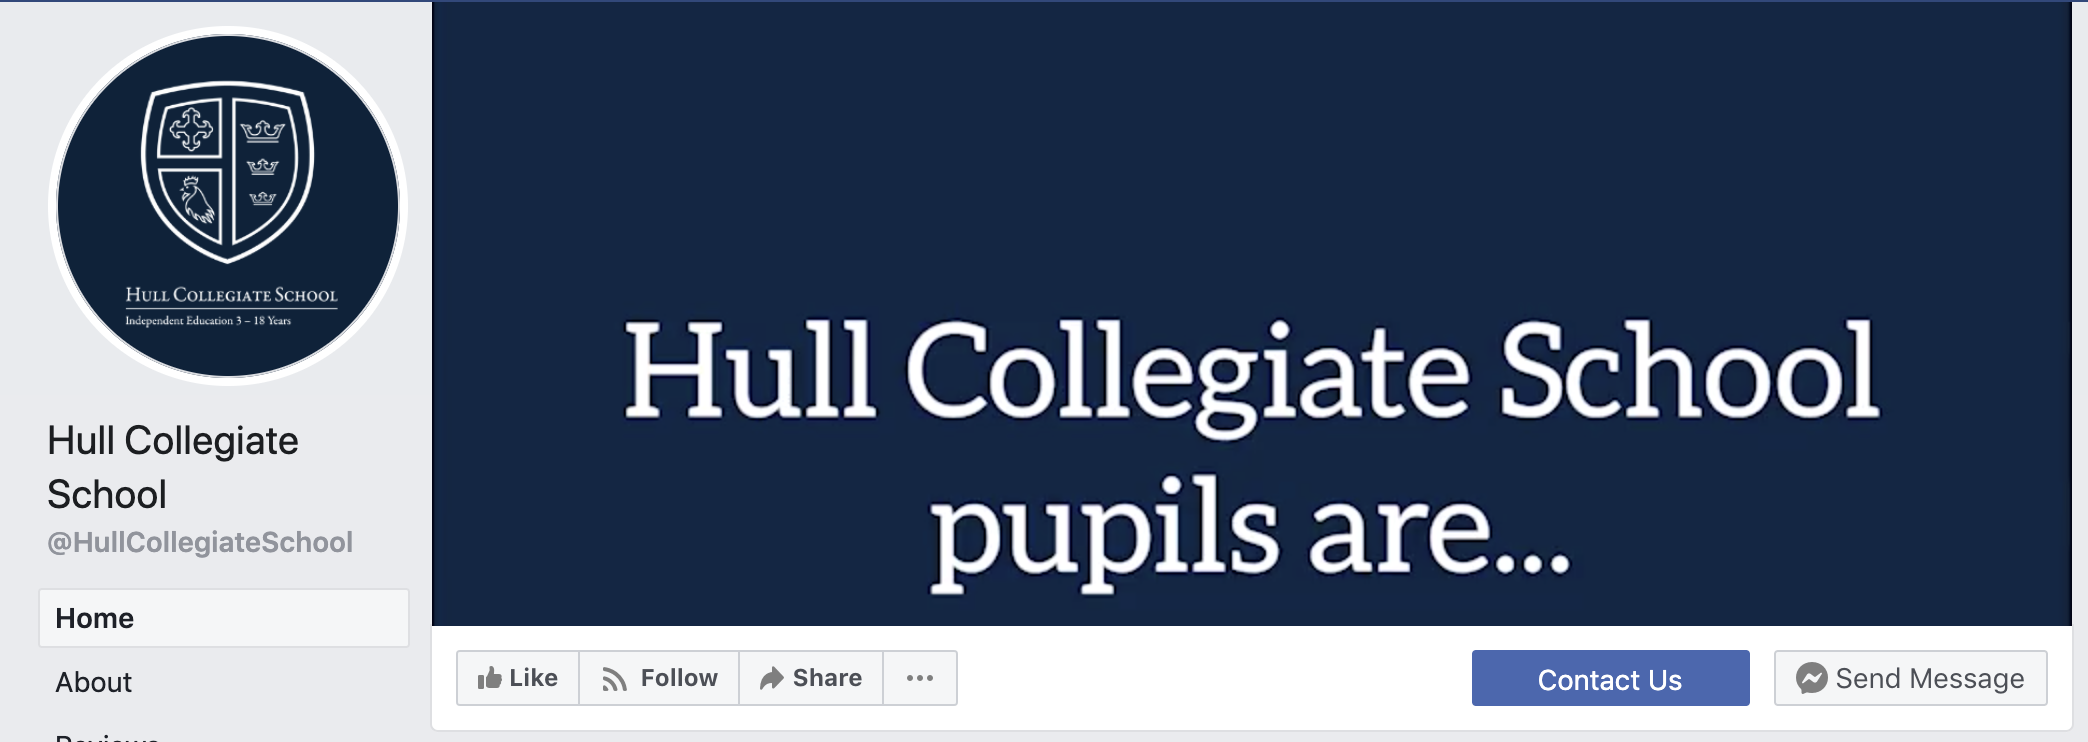 Hull Collegiate School